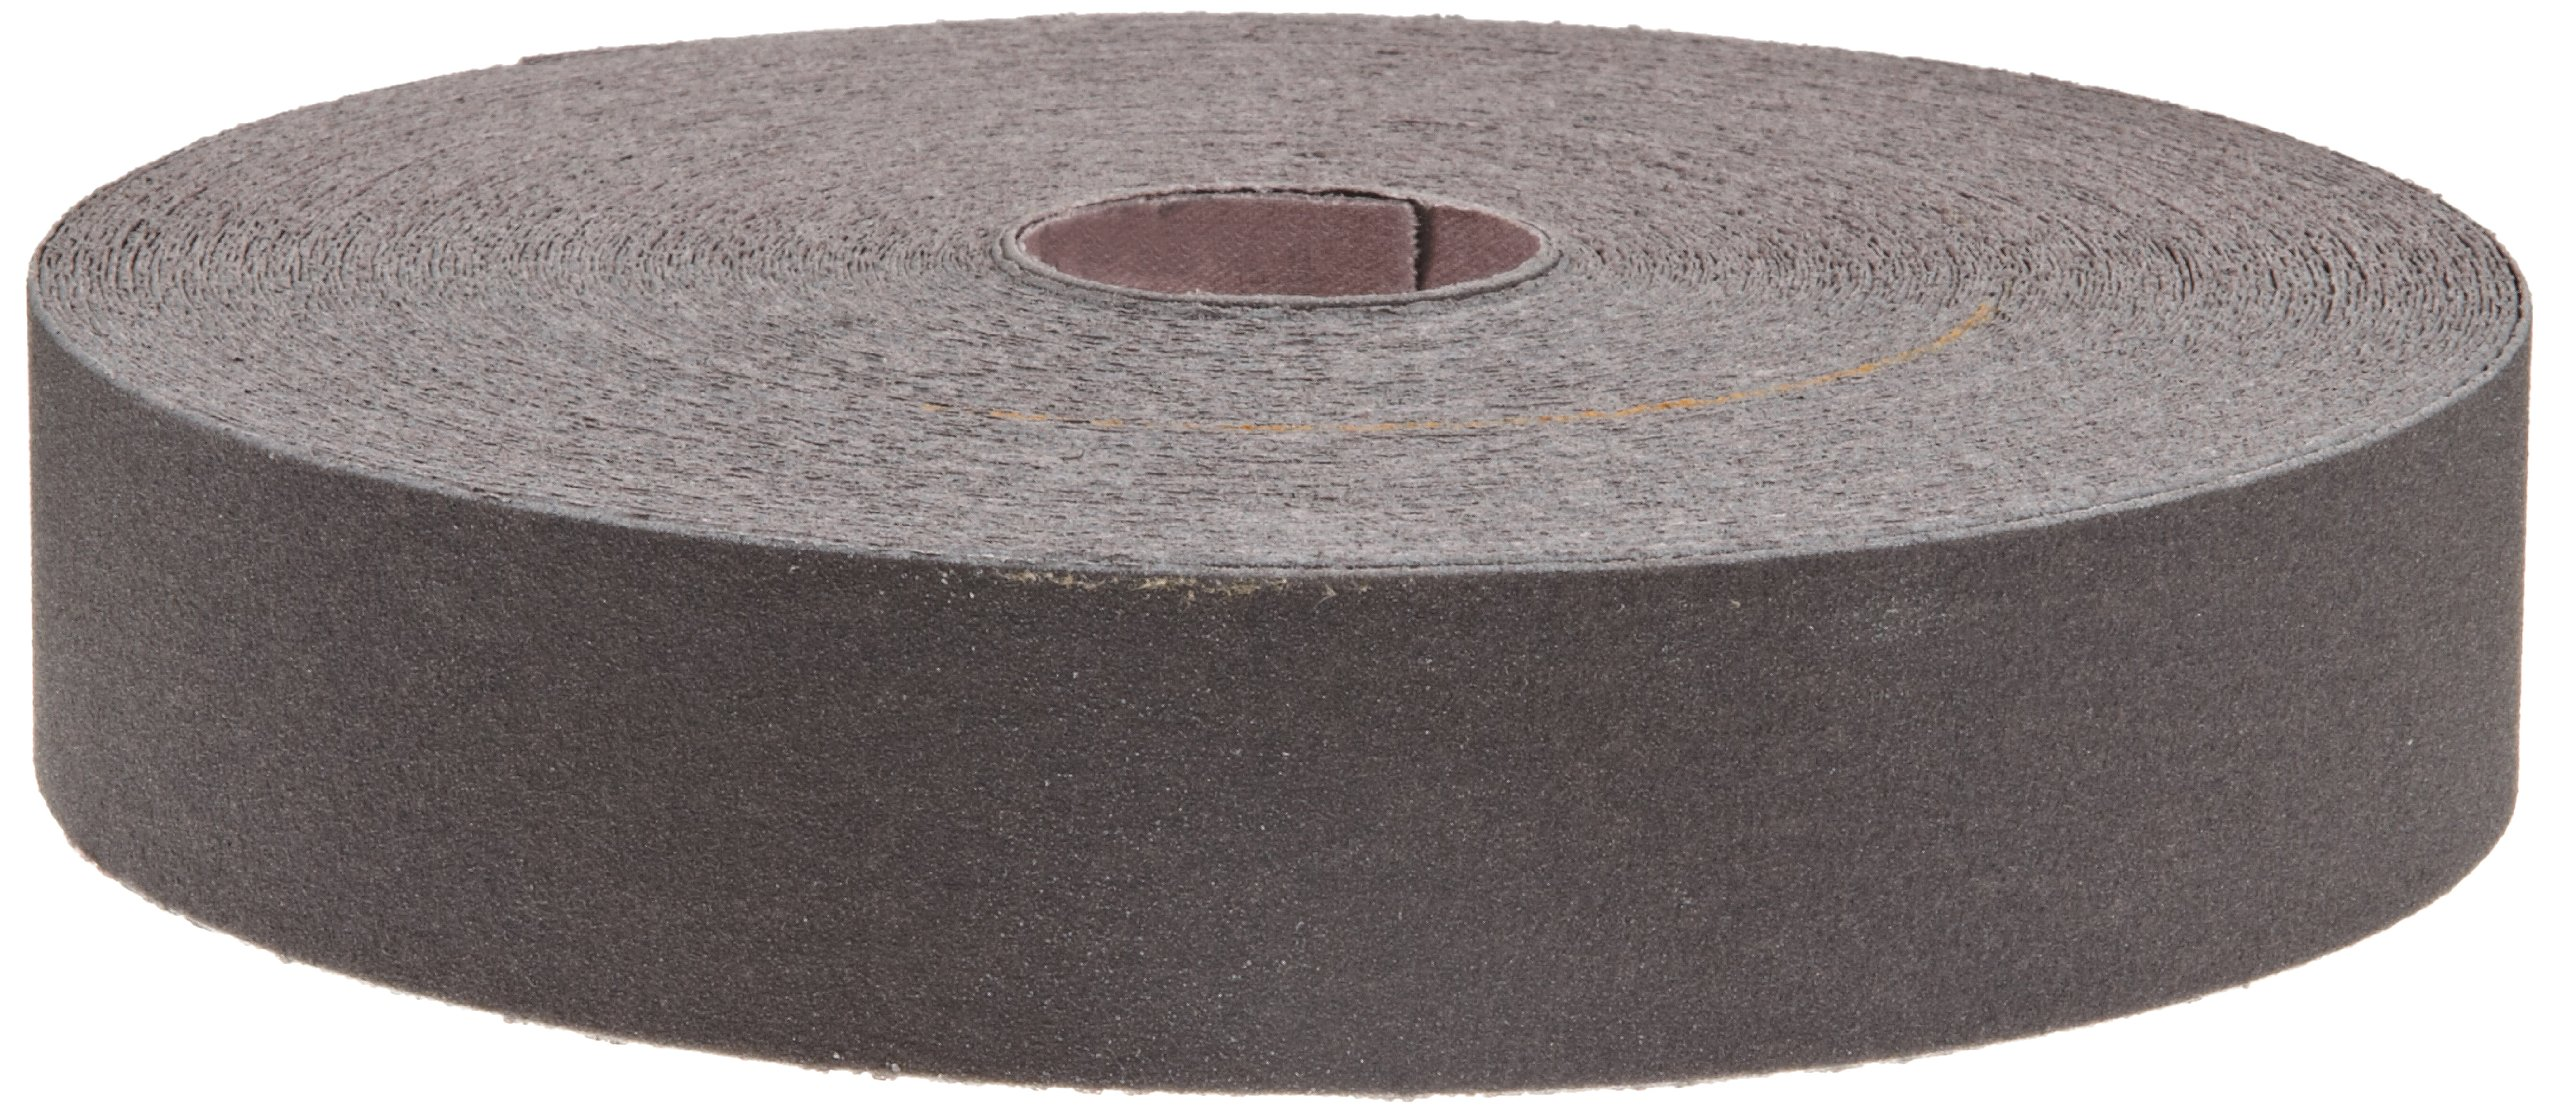 3M Utility Cloth Roll 211K, Aluminum Oxide, 1-1/2'' Width x 50yd Length, 120 Grit (Pack of 1)